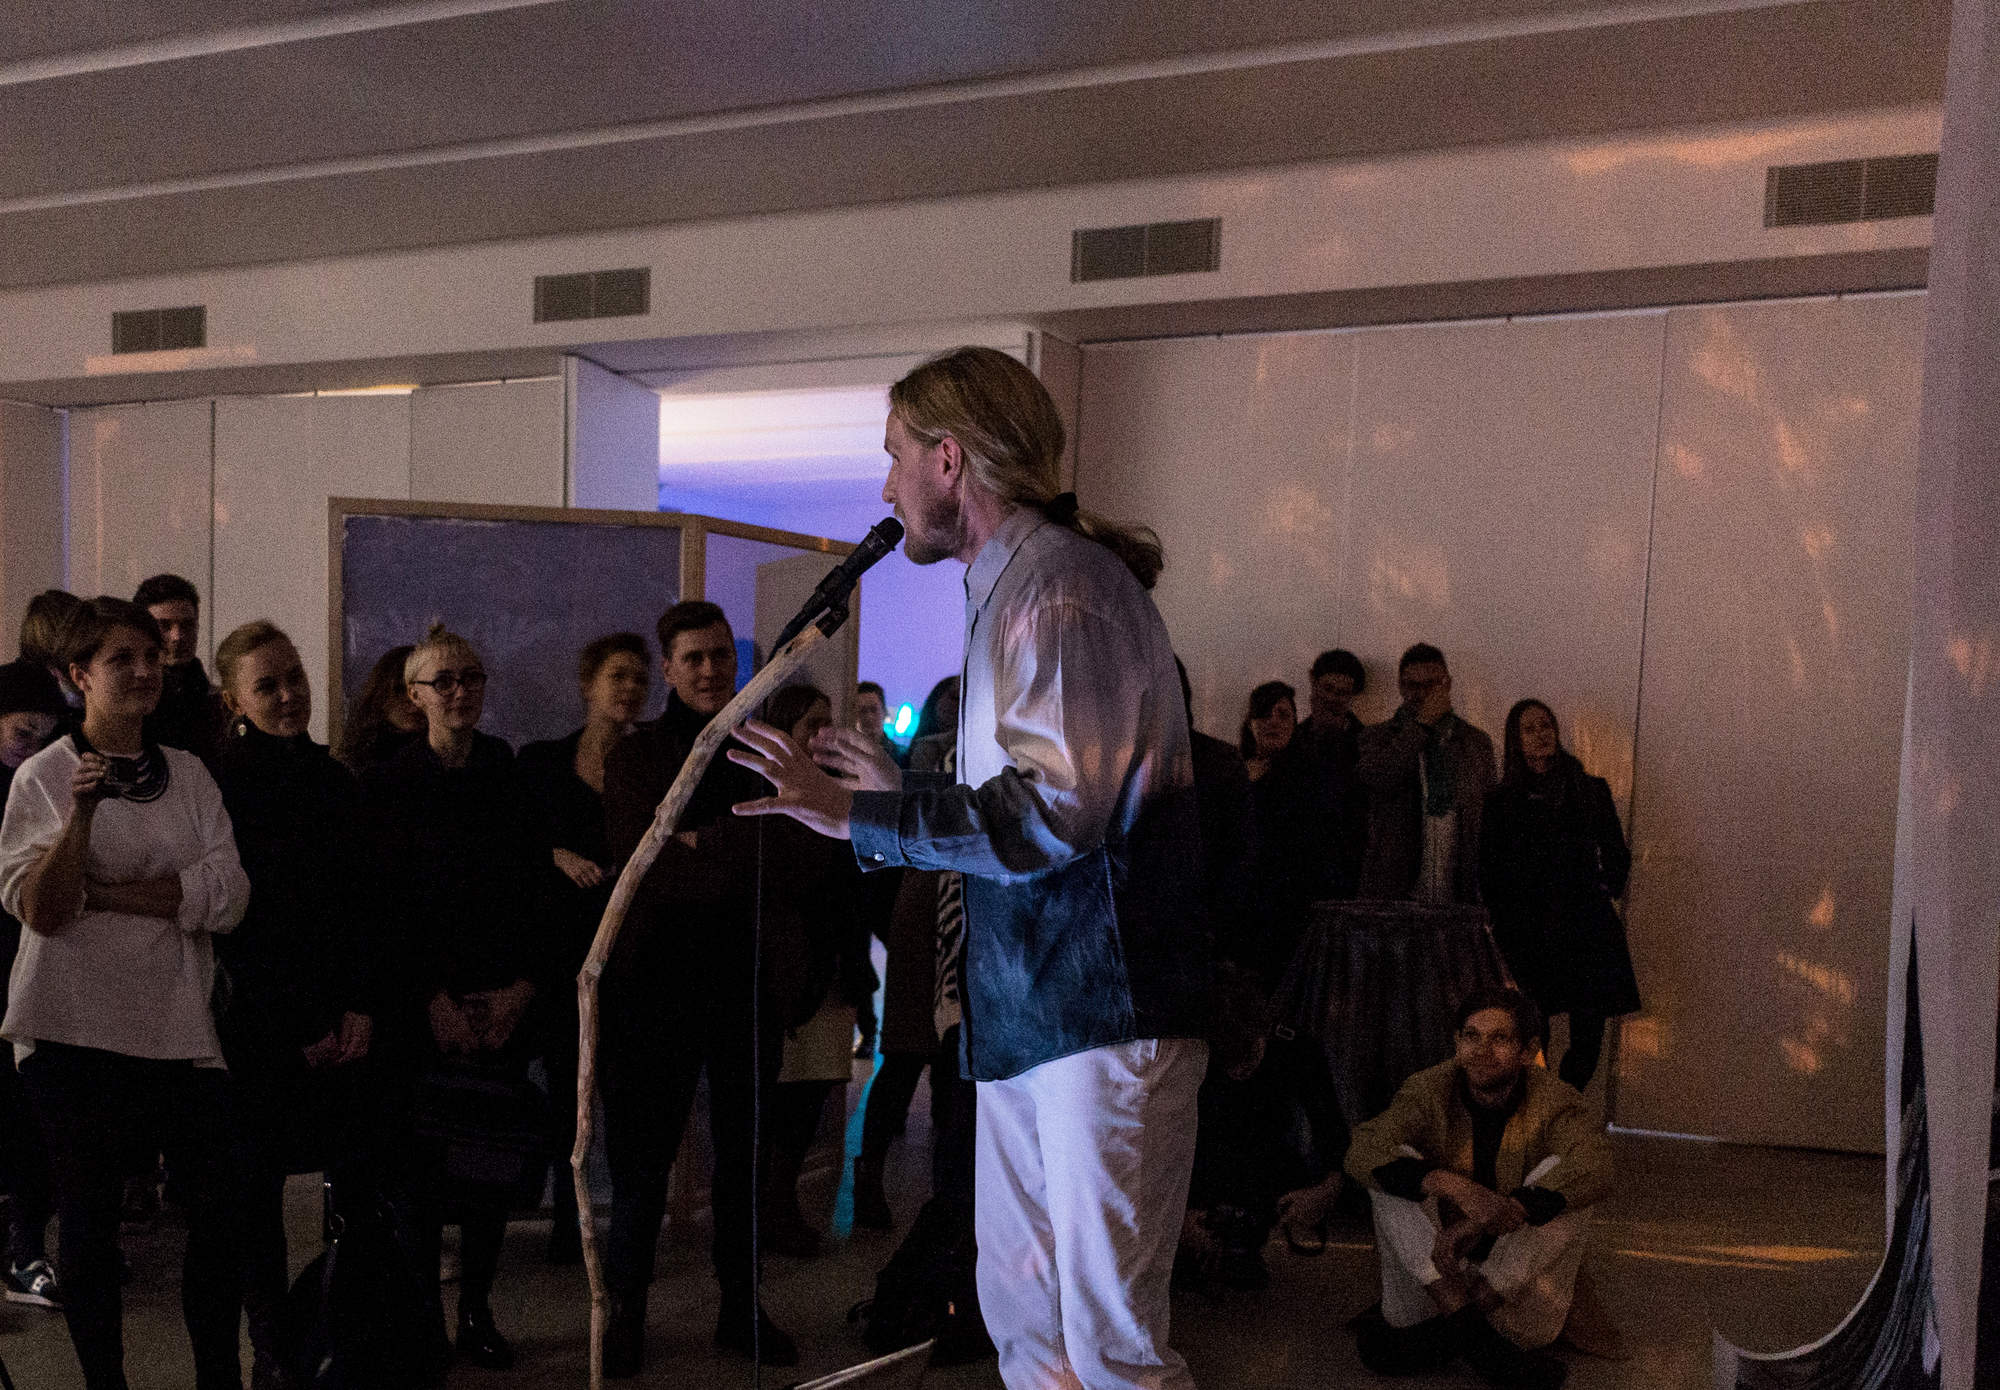 'Butterfly Blues', Styrmir O¦êrn Gu+¦mundsson, 2015, performance 2